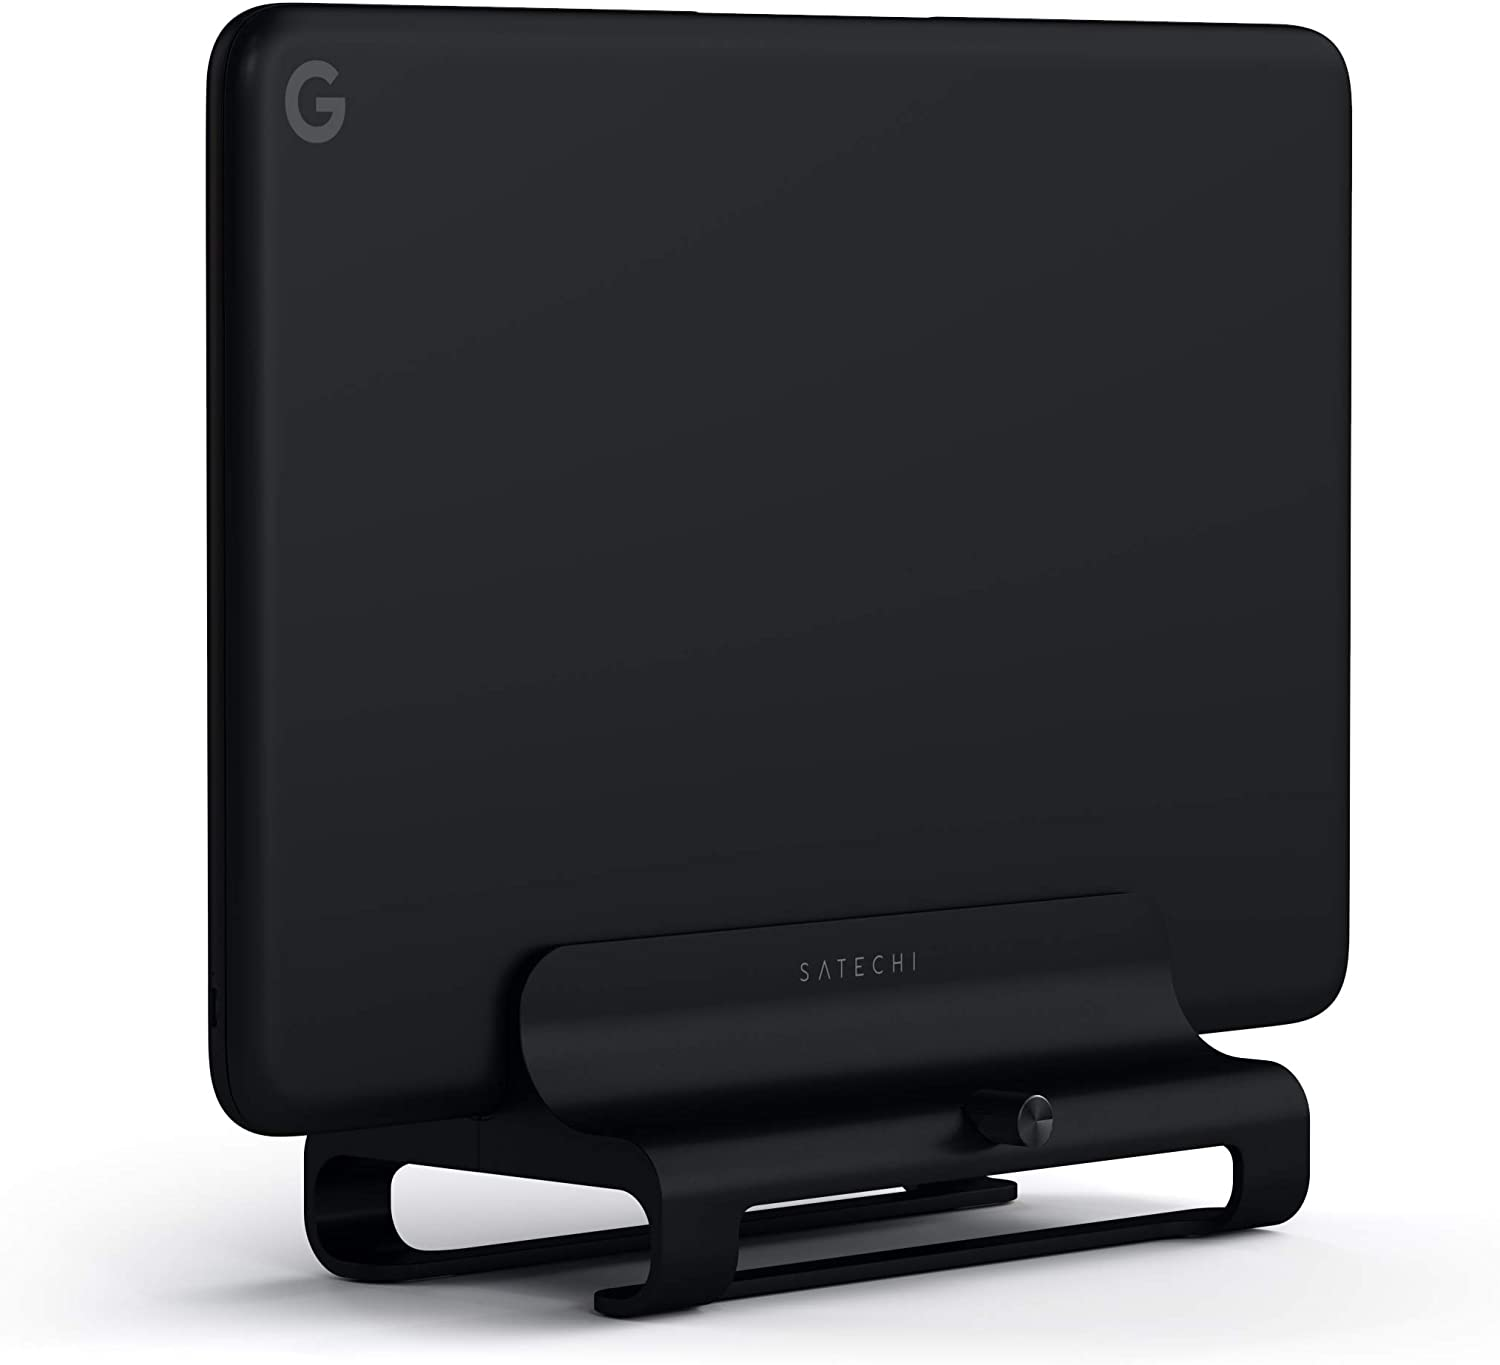 Satechi Universal Vertical Aluminum Laptop Stand - Compatible with MacBook, MacBook Pro, Dell XPS, Lenovo Yoga, Asus Zenbook, Samsung Notebook and More (Jet Black)